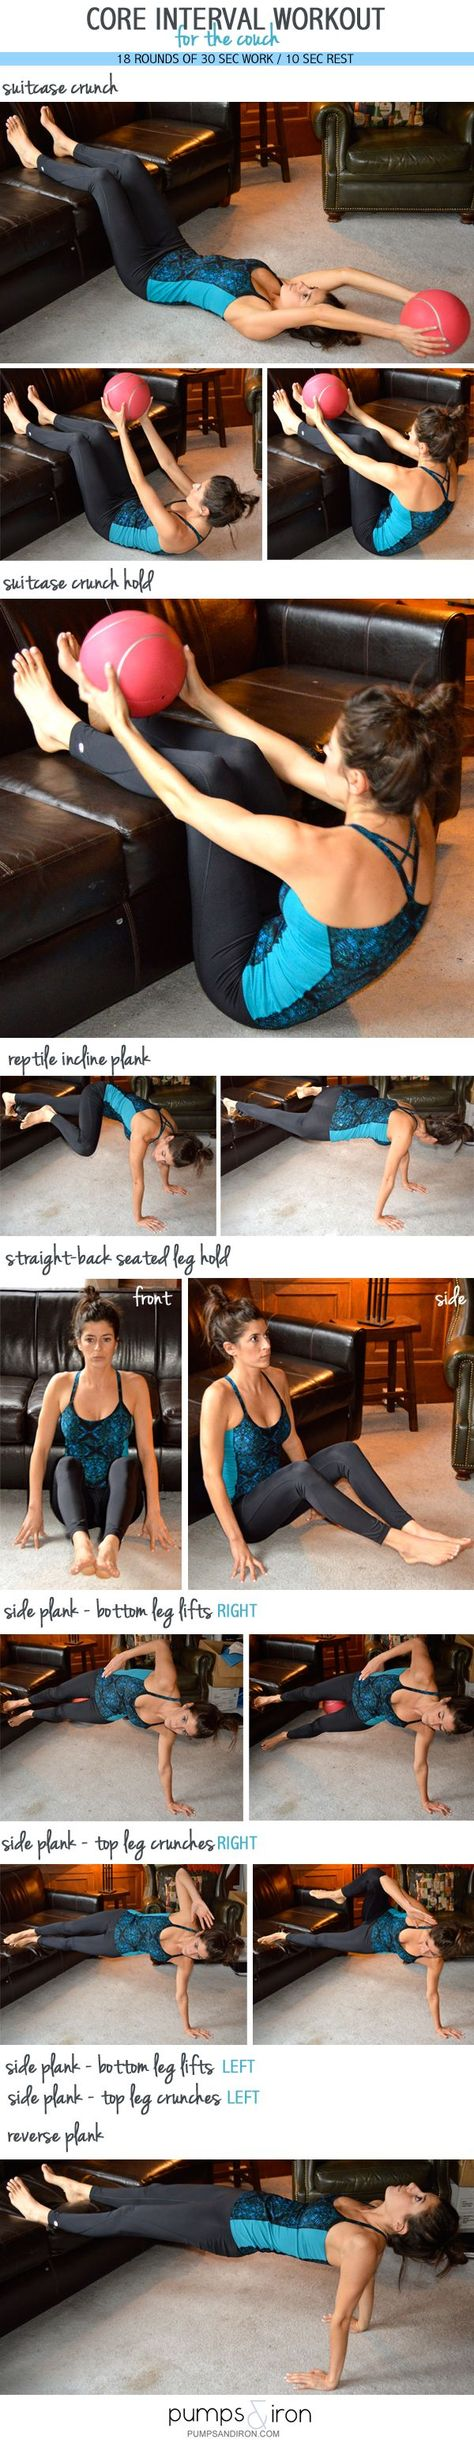 Core Interval Workout for the Couch.